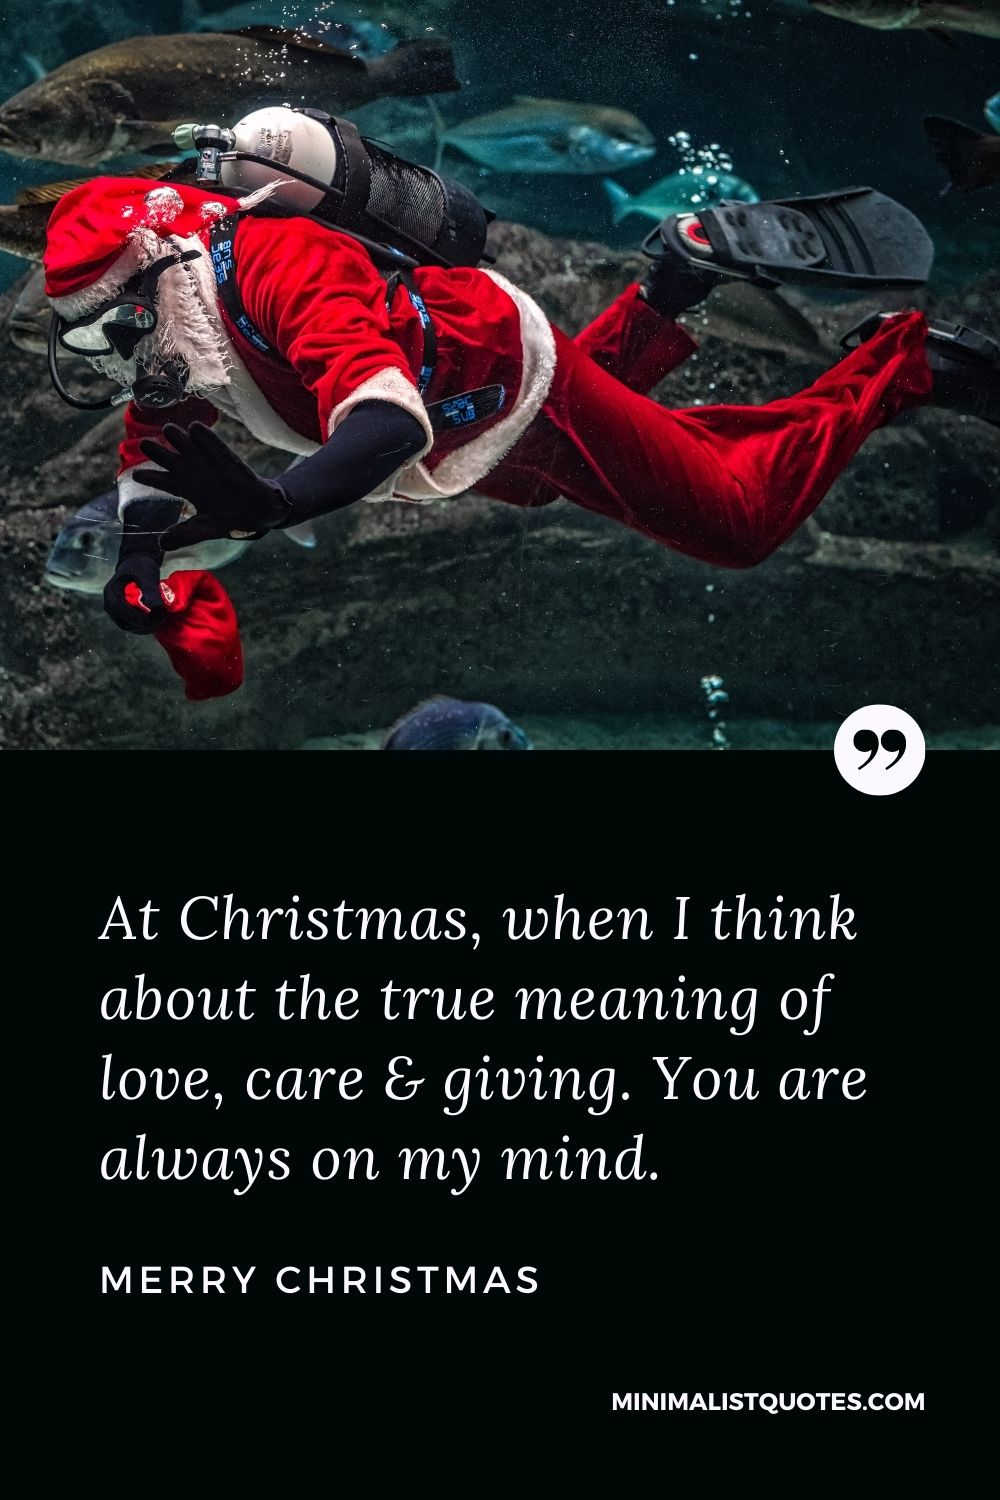 Merry Christmas Wish - At Christmas, when I think about the truemeaning of love, care & giving. You are always on my mind.